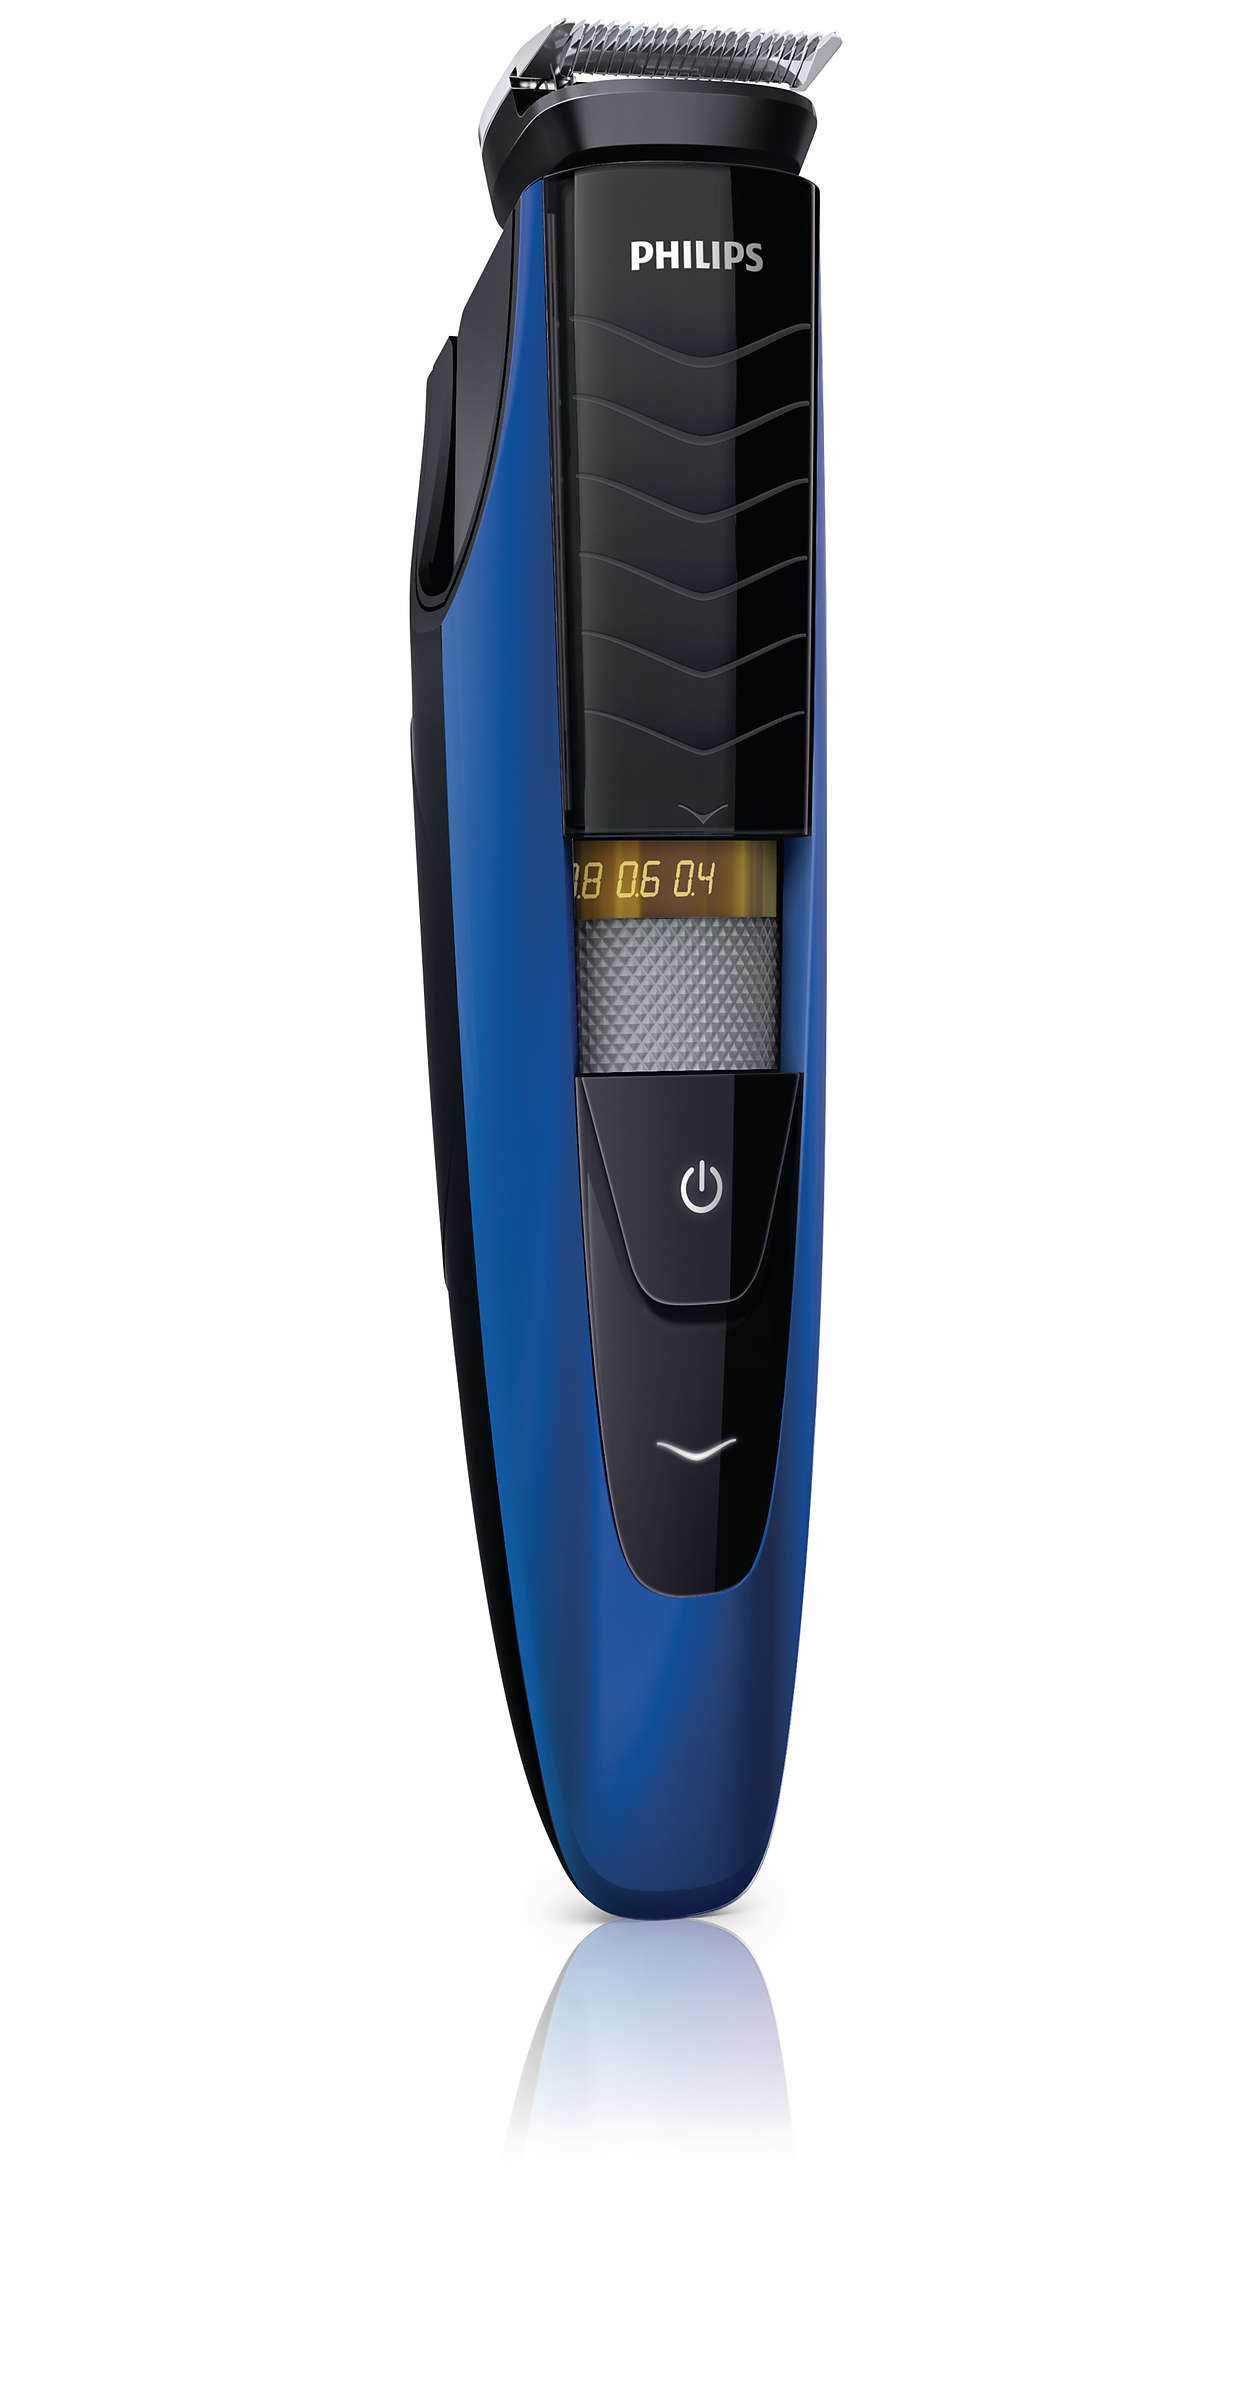 beardtrimmer series 5000 waterproof beard trimmer bt5260 32 philips. Black Bedroom Furniture Sets. Home Design Ideas